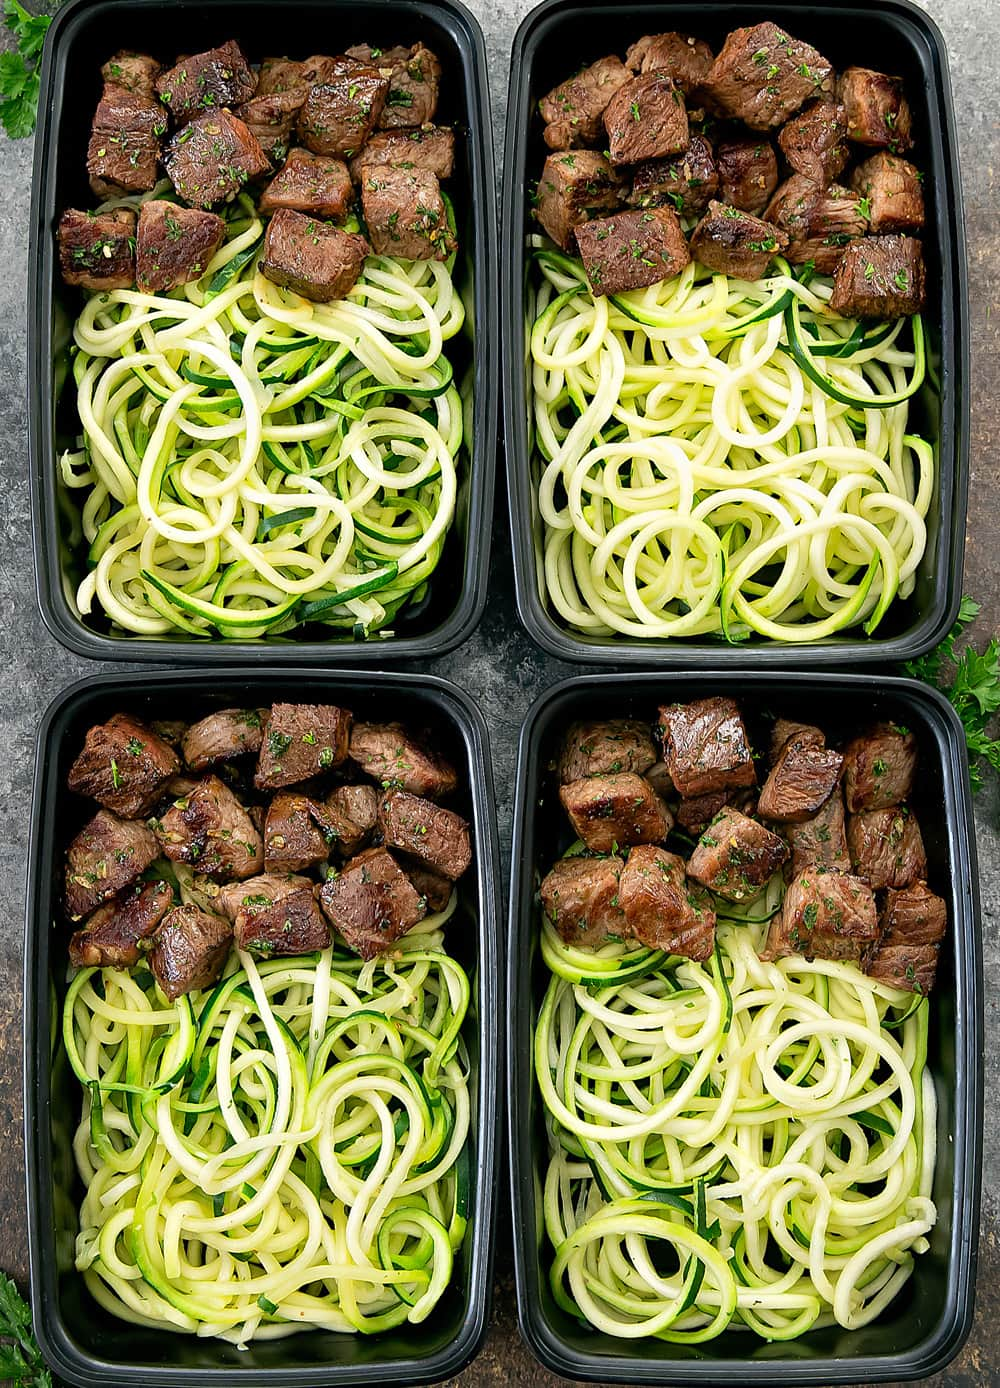 Garlic Butter Steak Bites With Zucchini Noodles Meal Prep Kirbie S Cravings